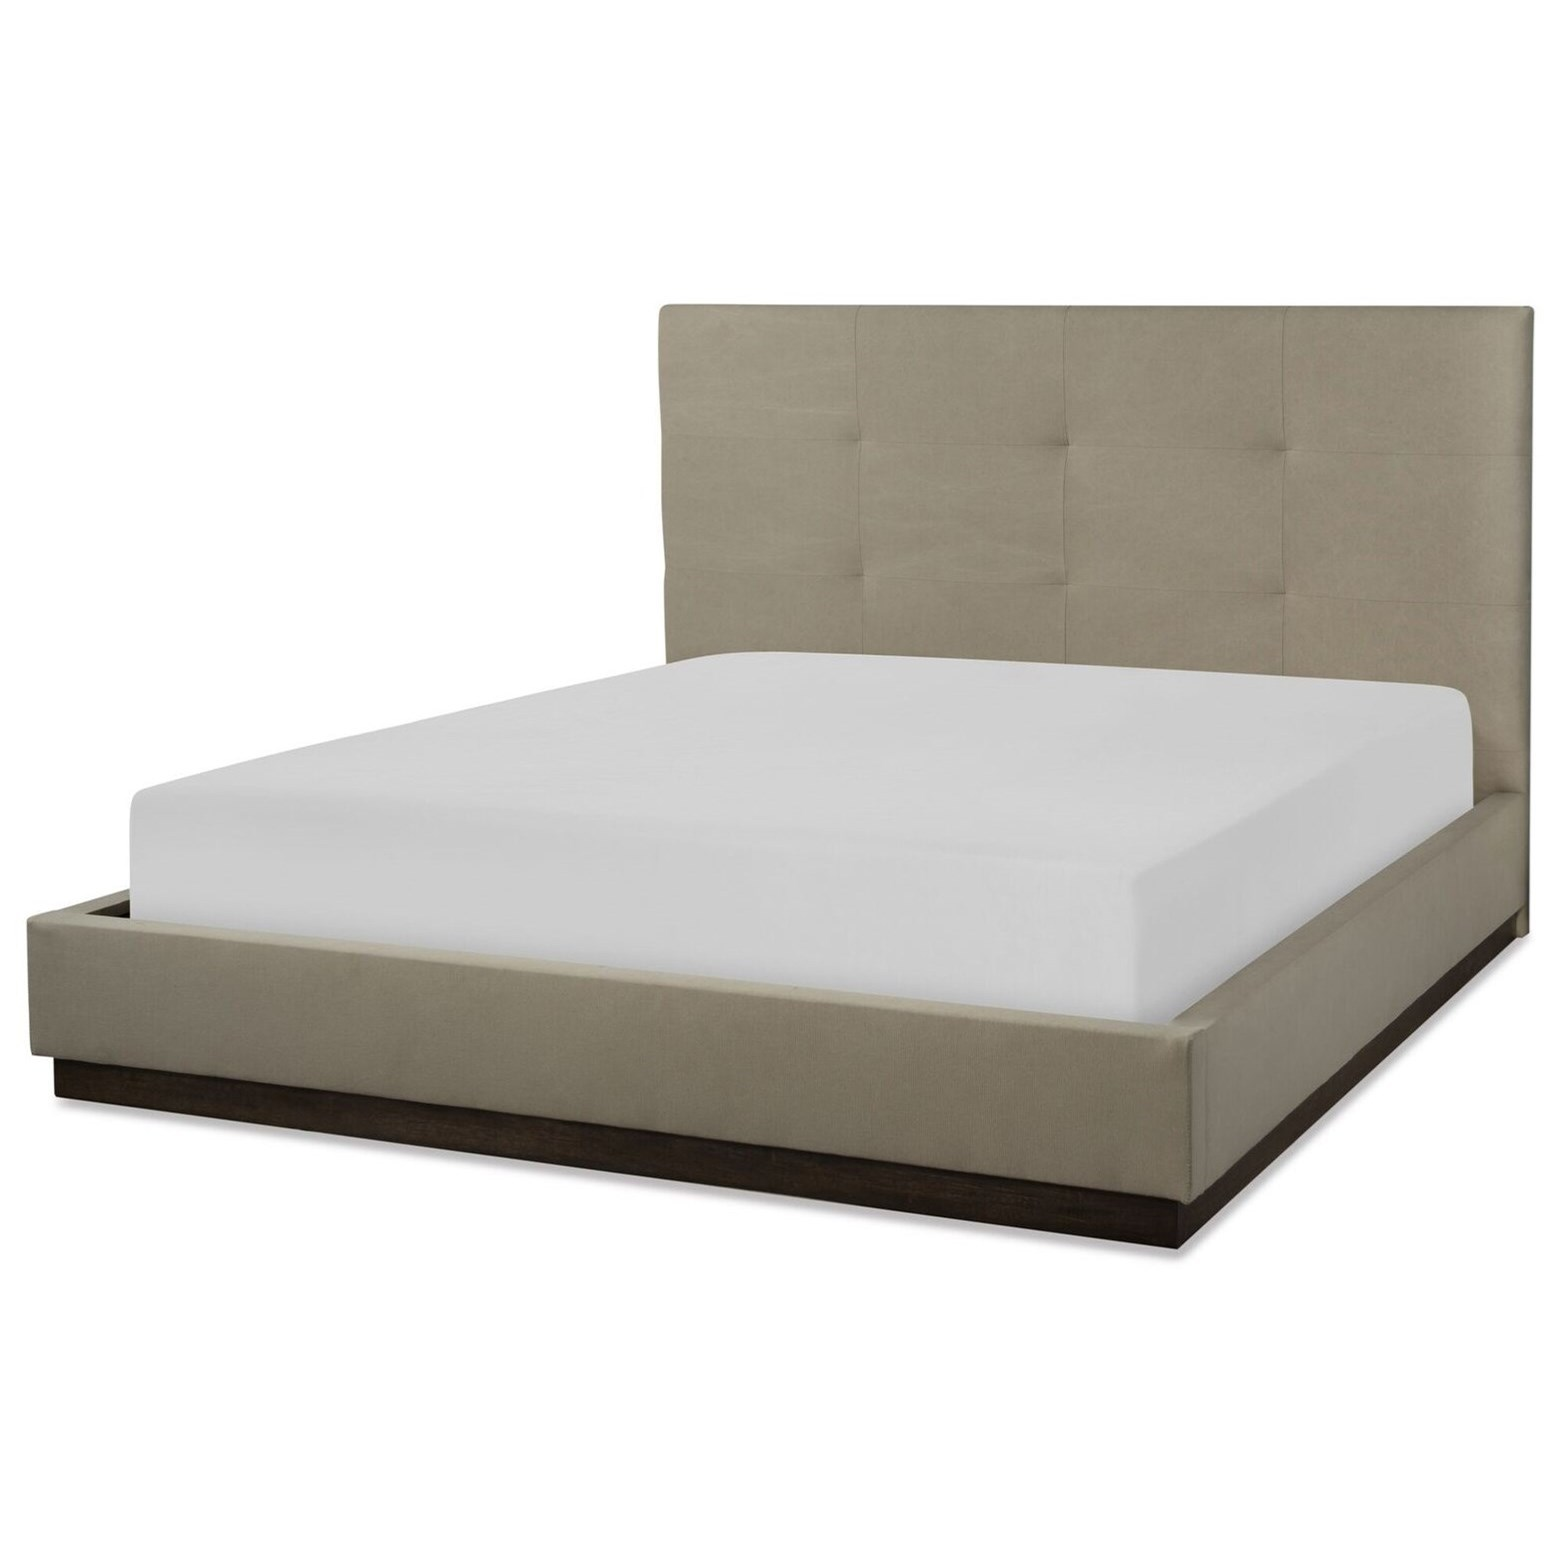 King Upholstered Wall Bed